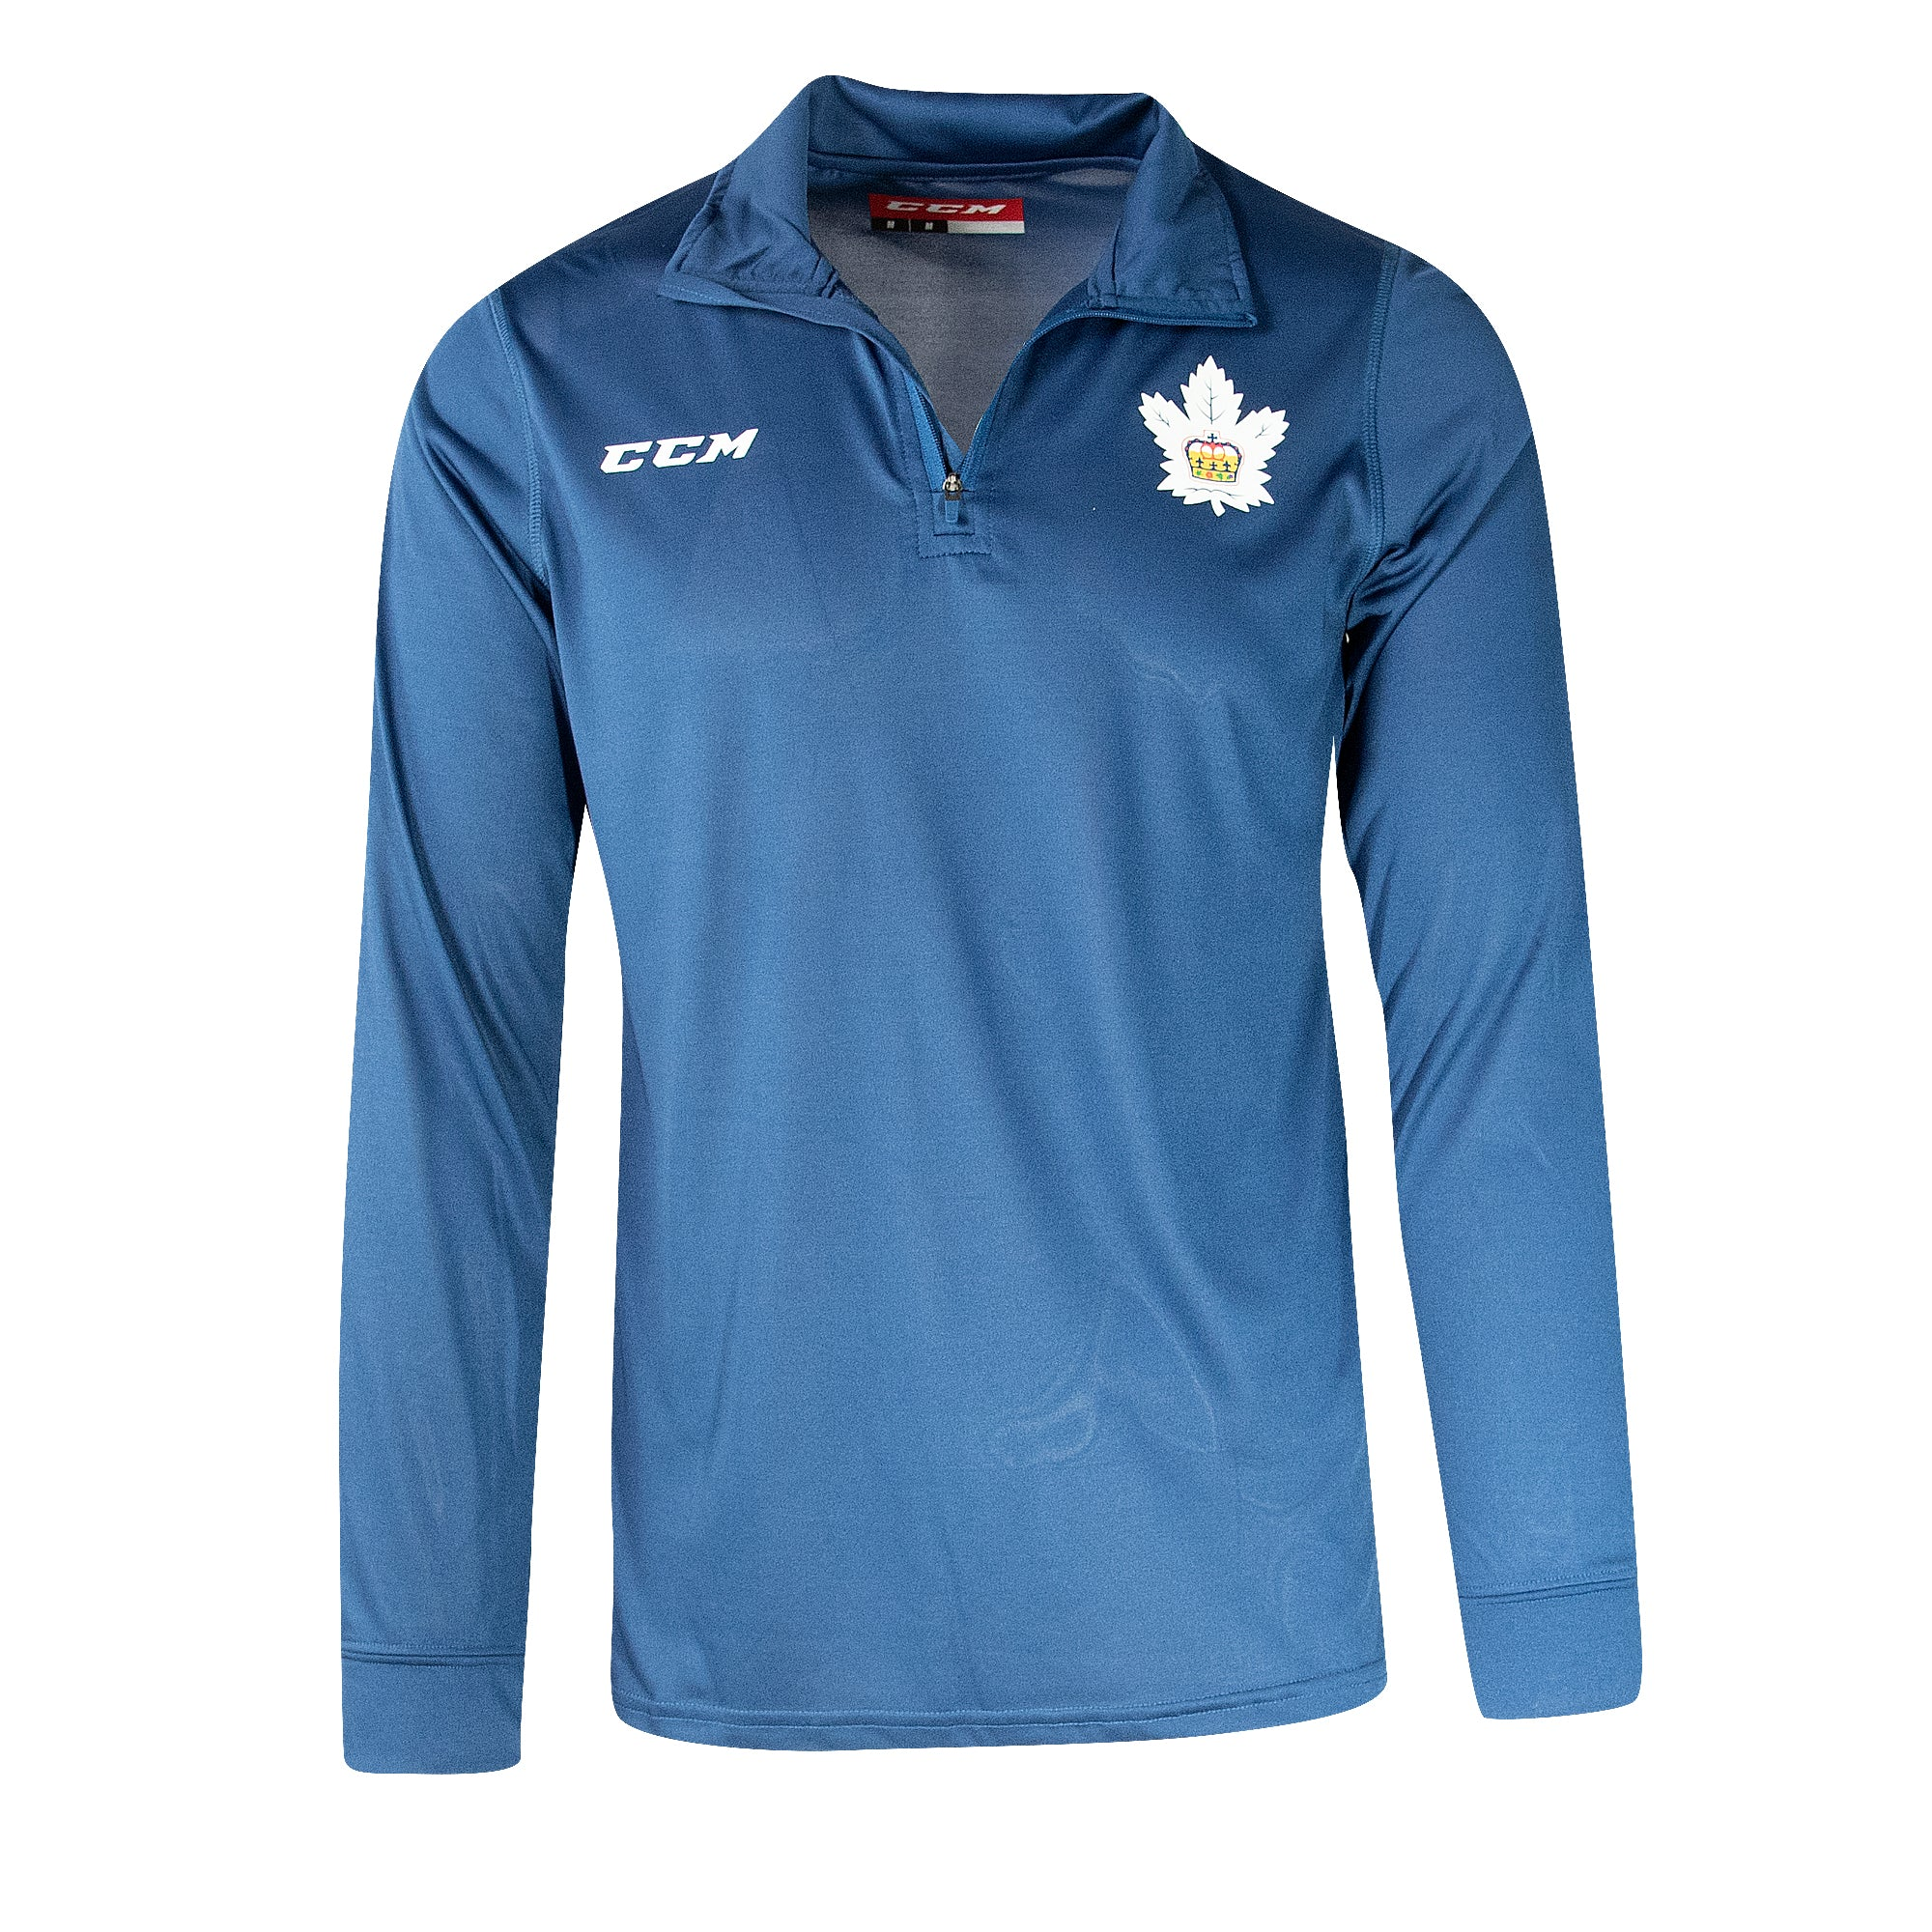 Marlies CCM Men's 1/4 Zip